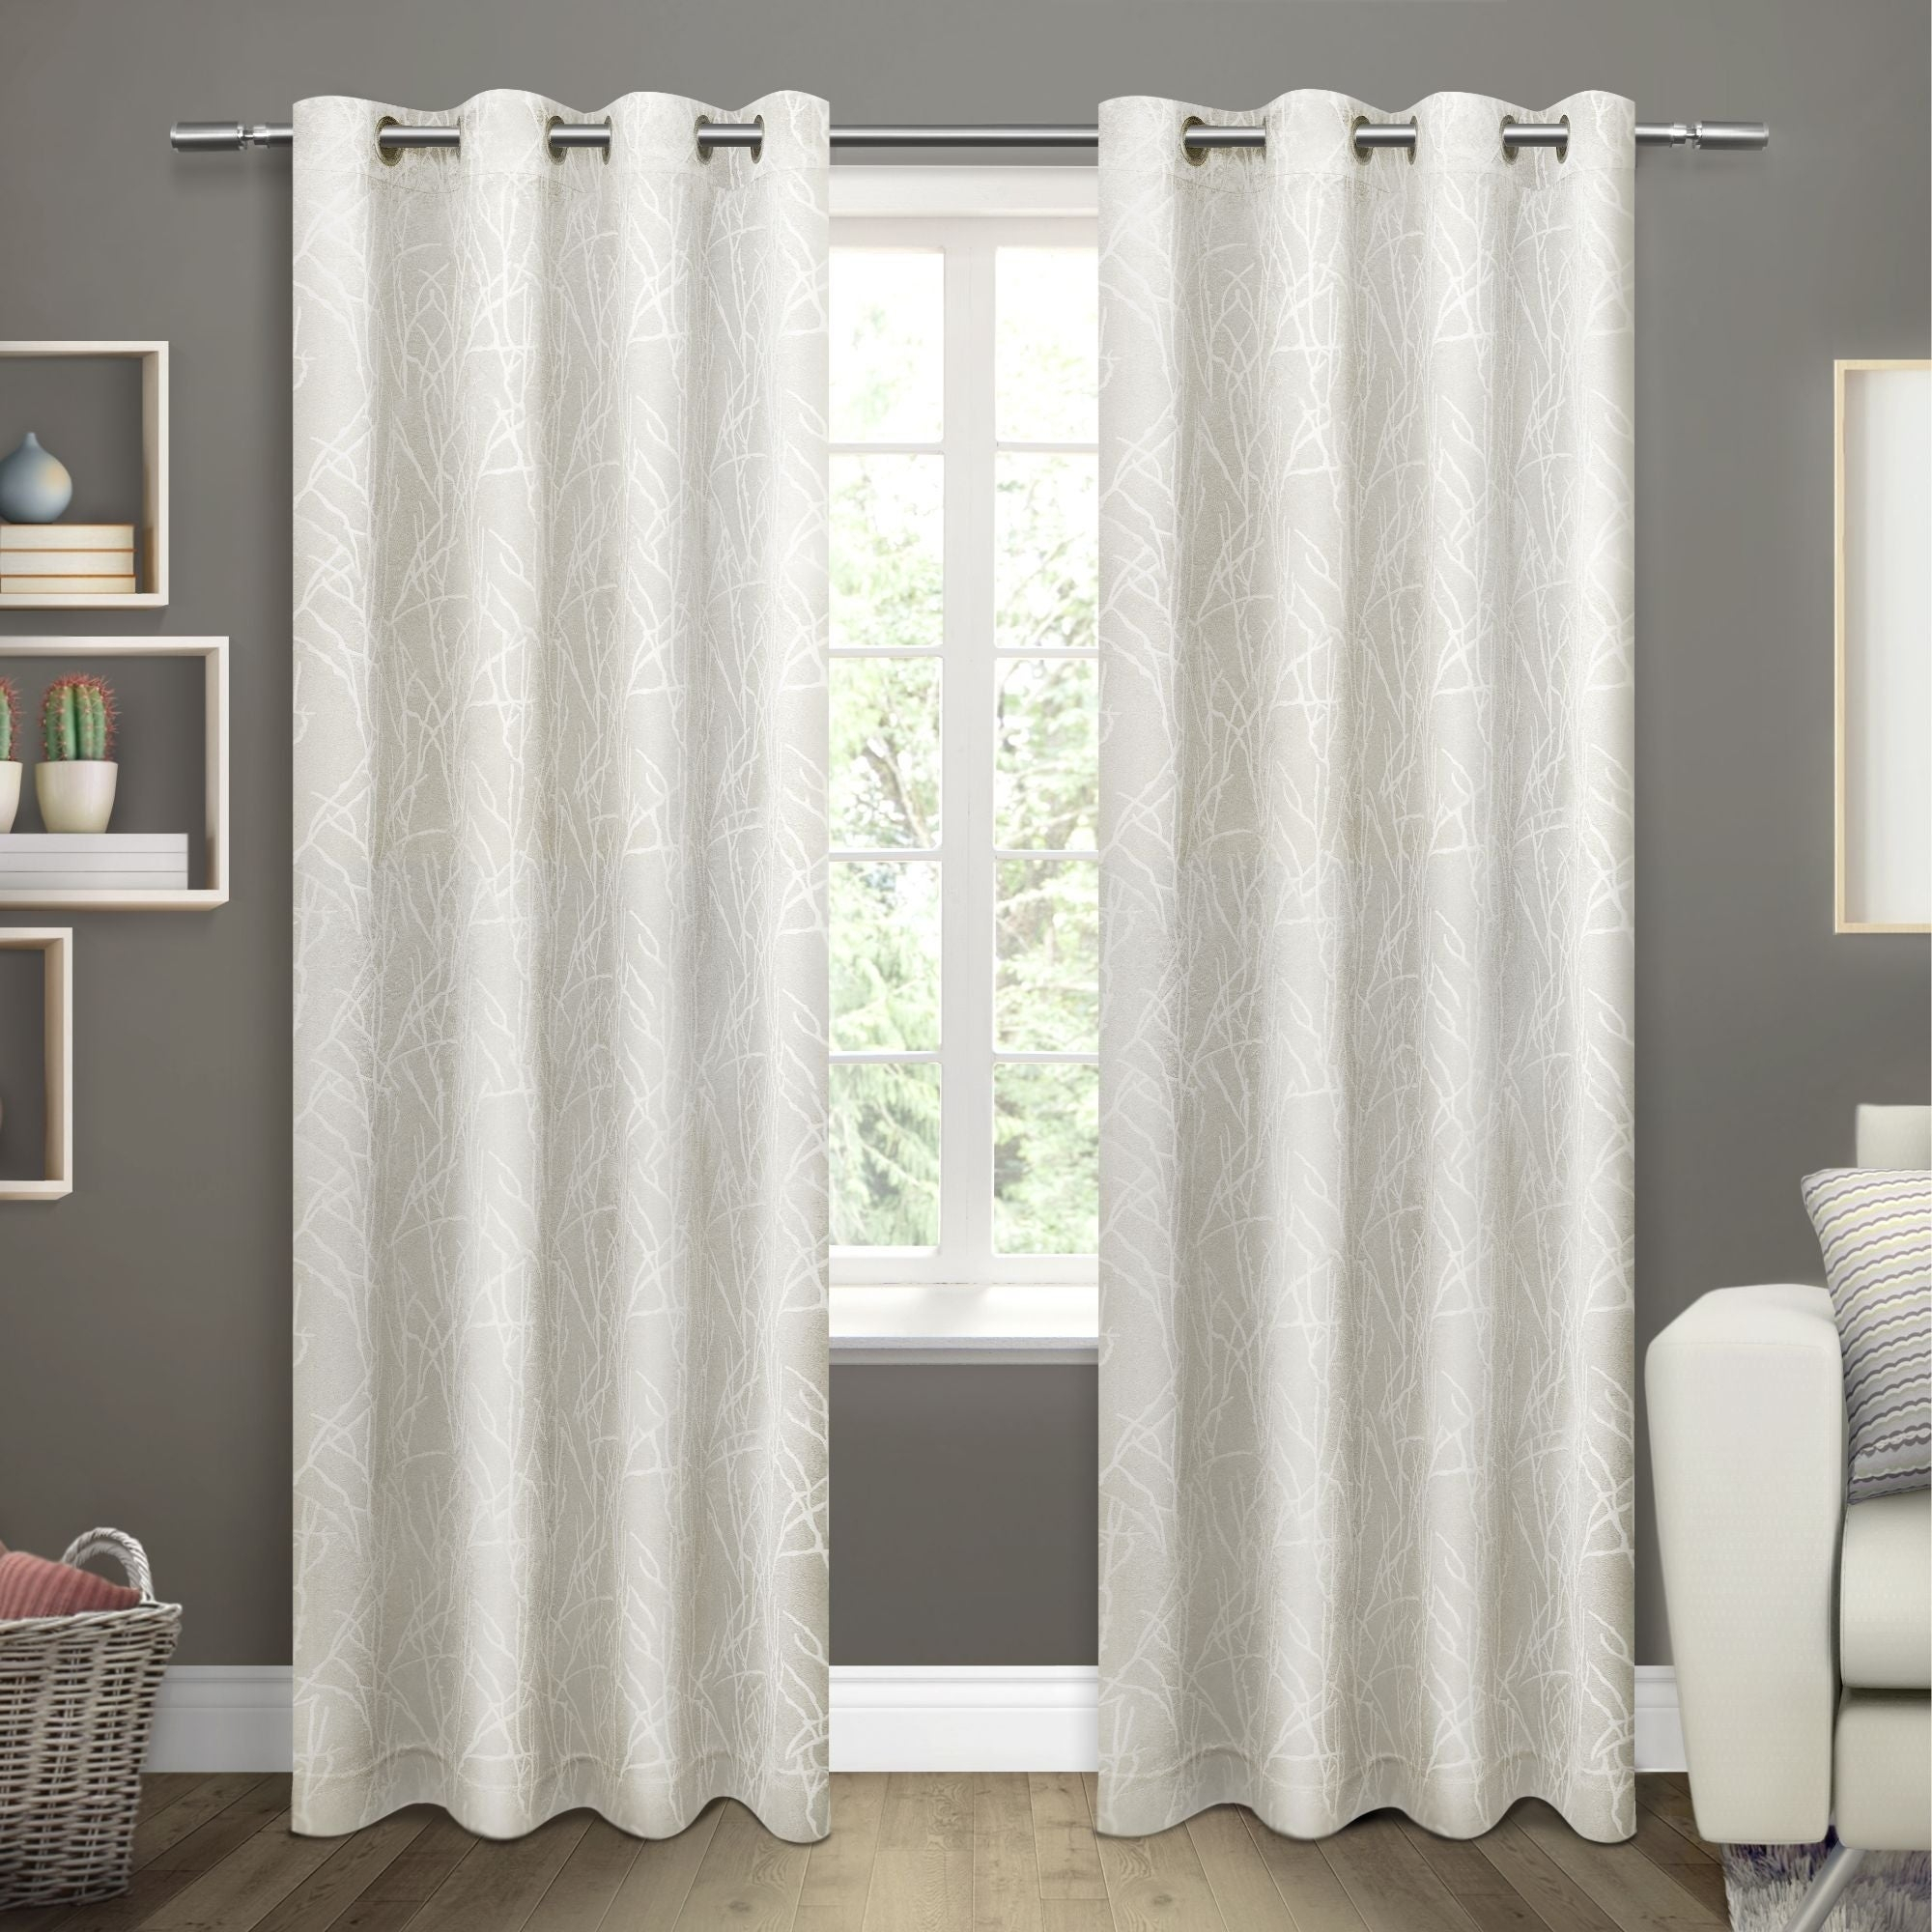 Ati Home Twig Insulated Blackout Curtain Panel Pair With Grommet Top With Regard To Gracewood Hollow Tucakovic Energy Efficient Fabric Blackout Curtains (View 16 of 20)